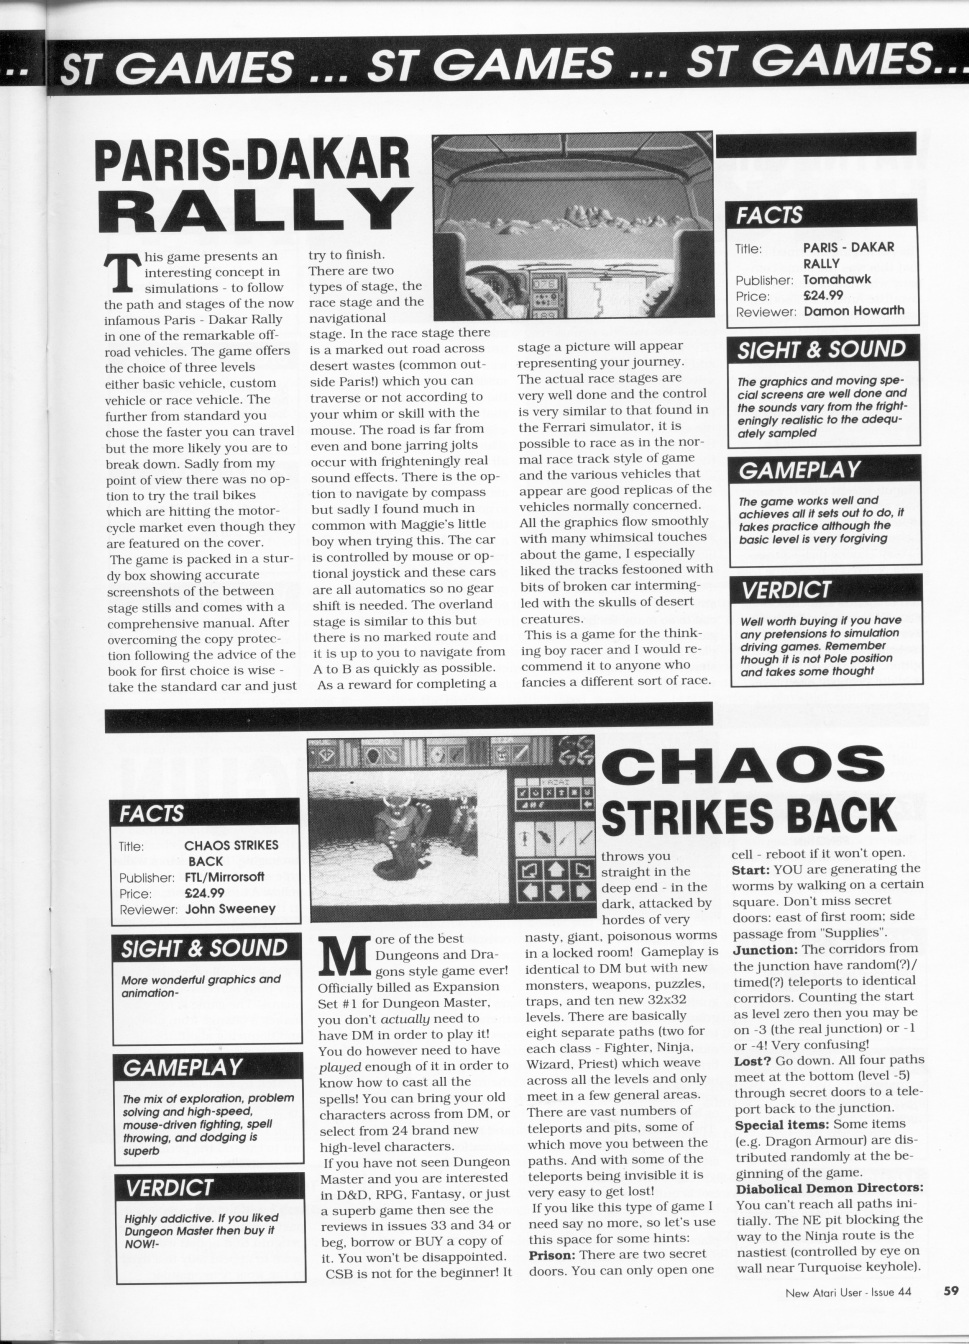 Chaos Strikes Back for Atari ST Review published in British magazine 'Page 6', Issue #44 June-July 1990, Page 59